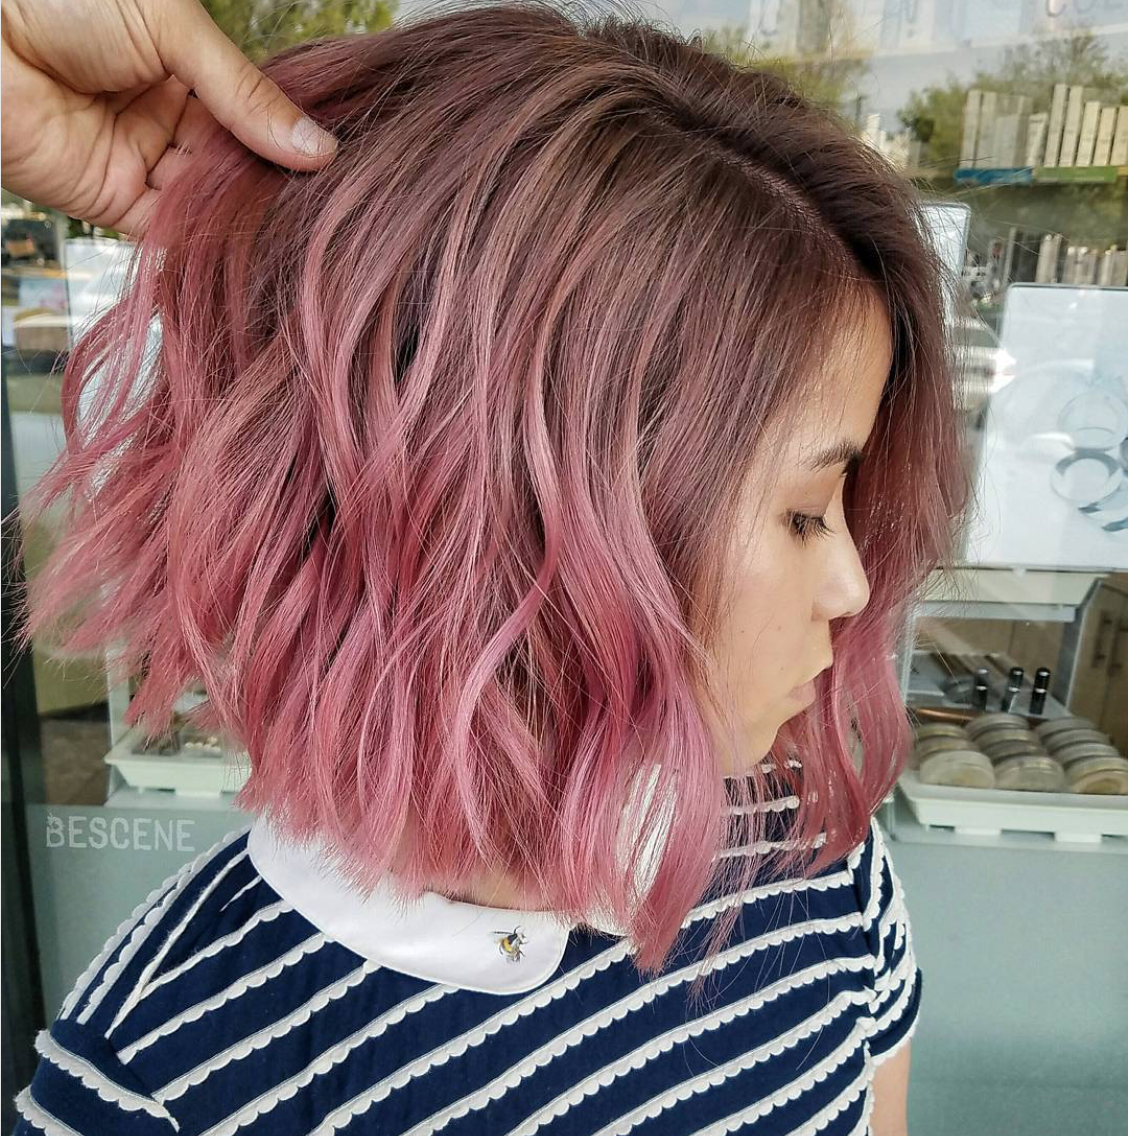 Image result for Hair coloring